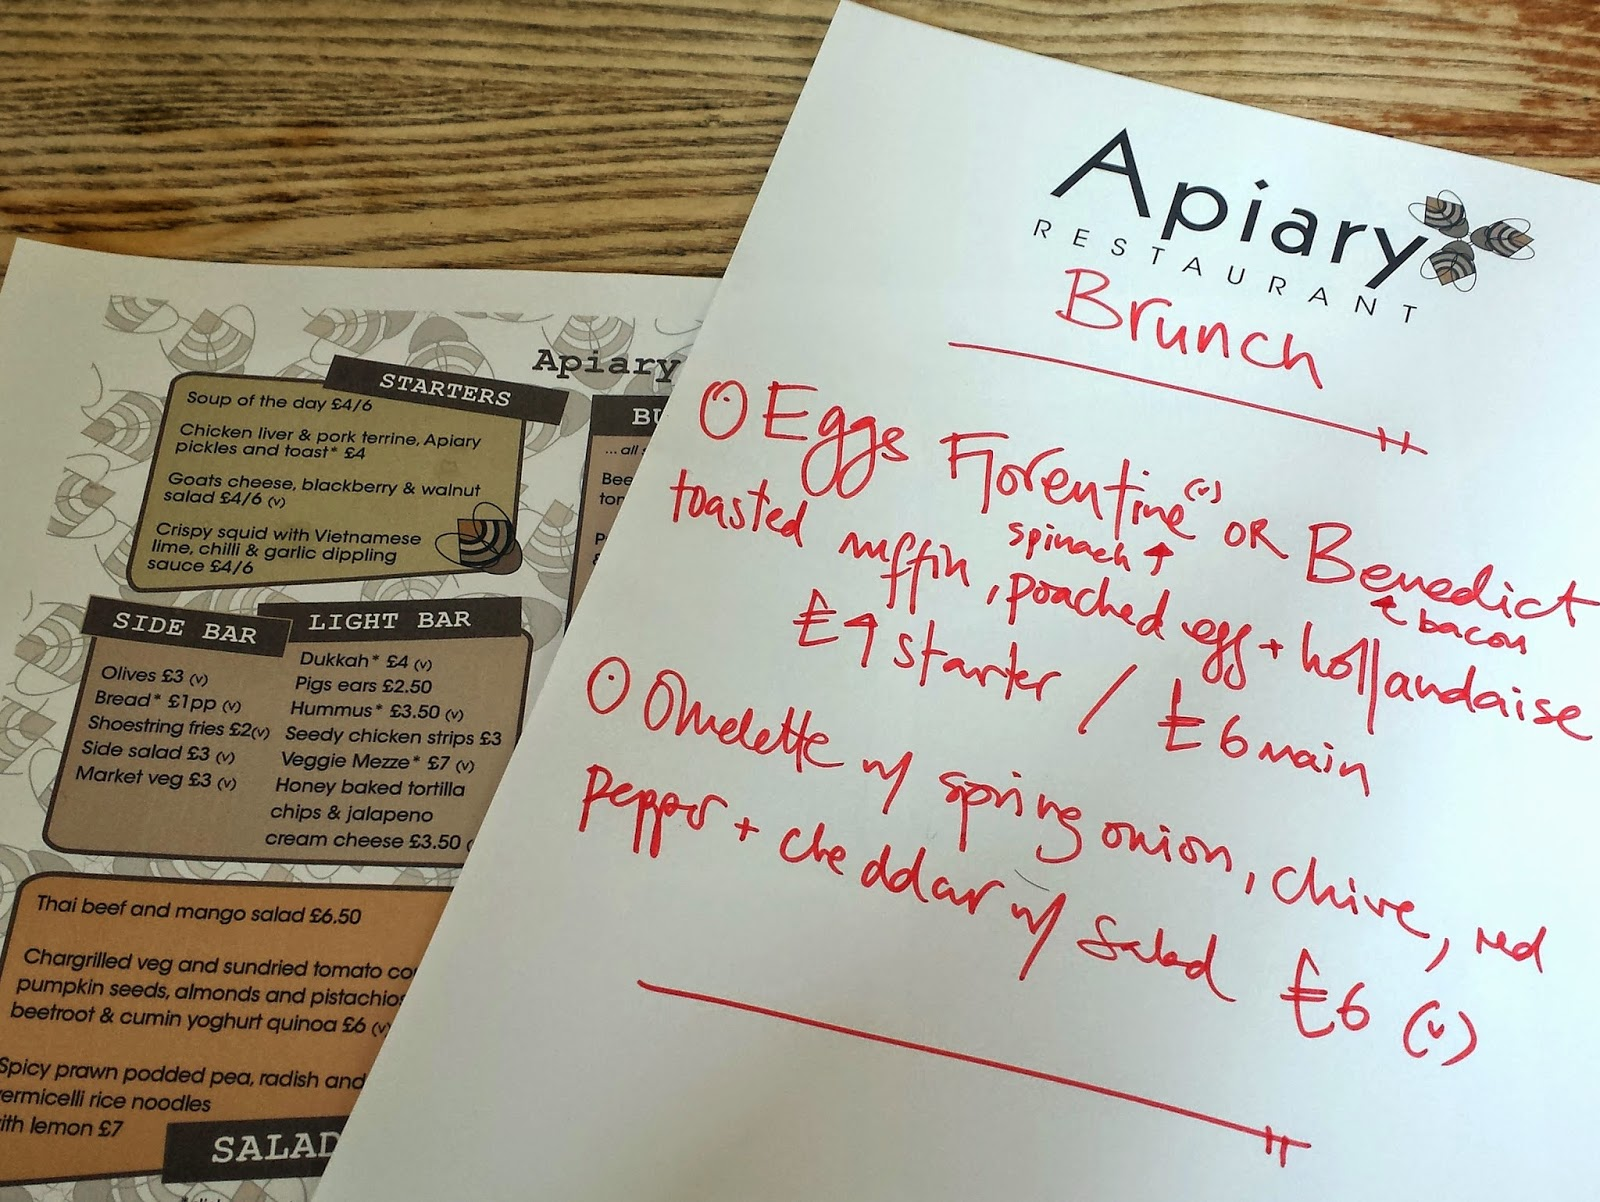 Apiary restaurant brunch menu Edinburgh